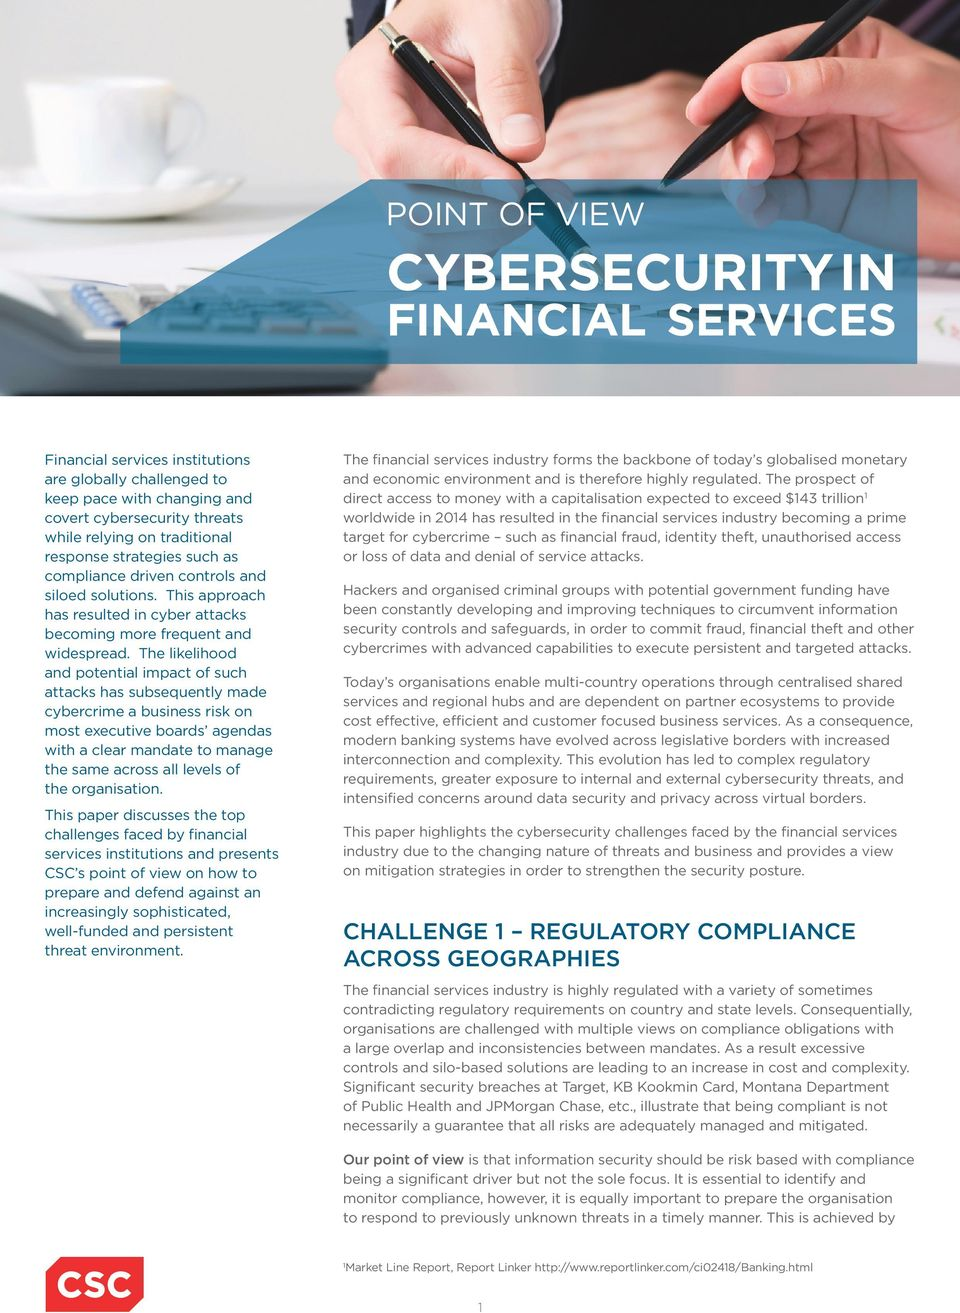 The likelihood and potential impact of such attacks has subsequently made cybercrime a business risk on most executive boards agendas with a clear mandate to manage the same across all levels of the